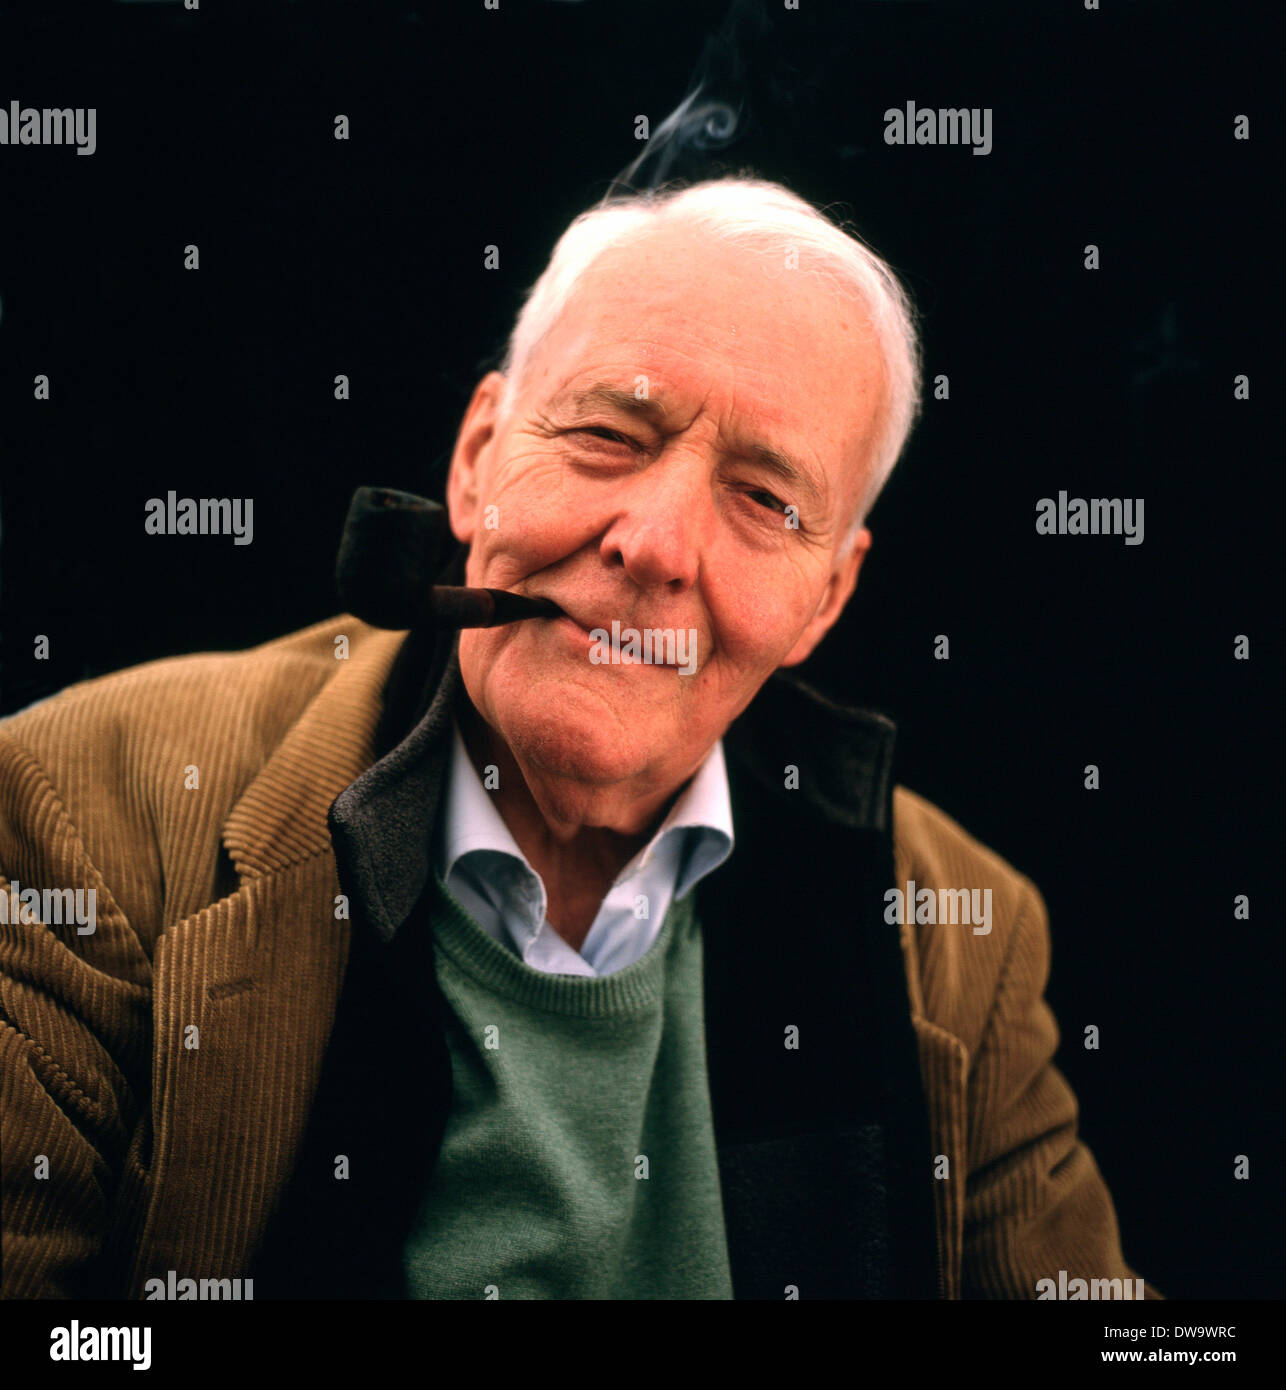 Portrait of Labour MP Tony Benn (Anthony Wedgwood Benn) smoking his pipe at  the 873f169400db